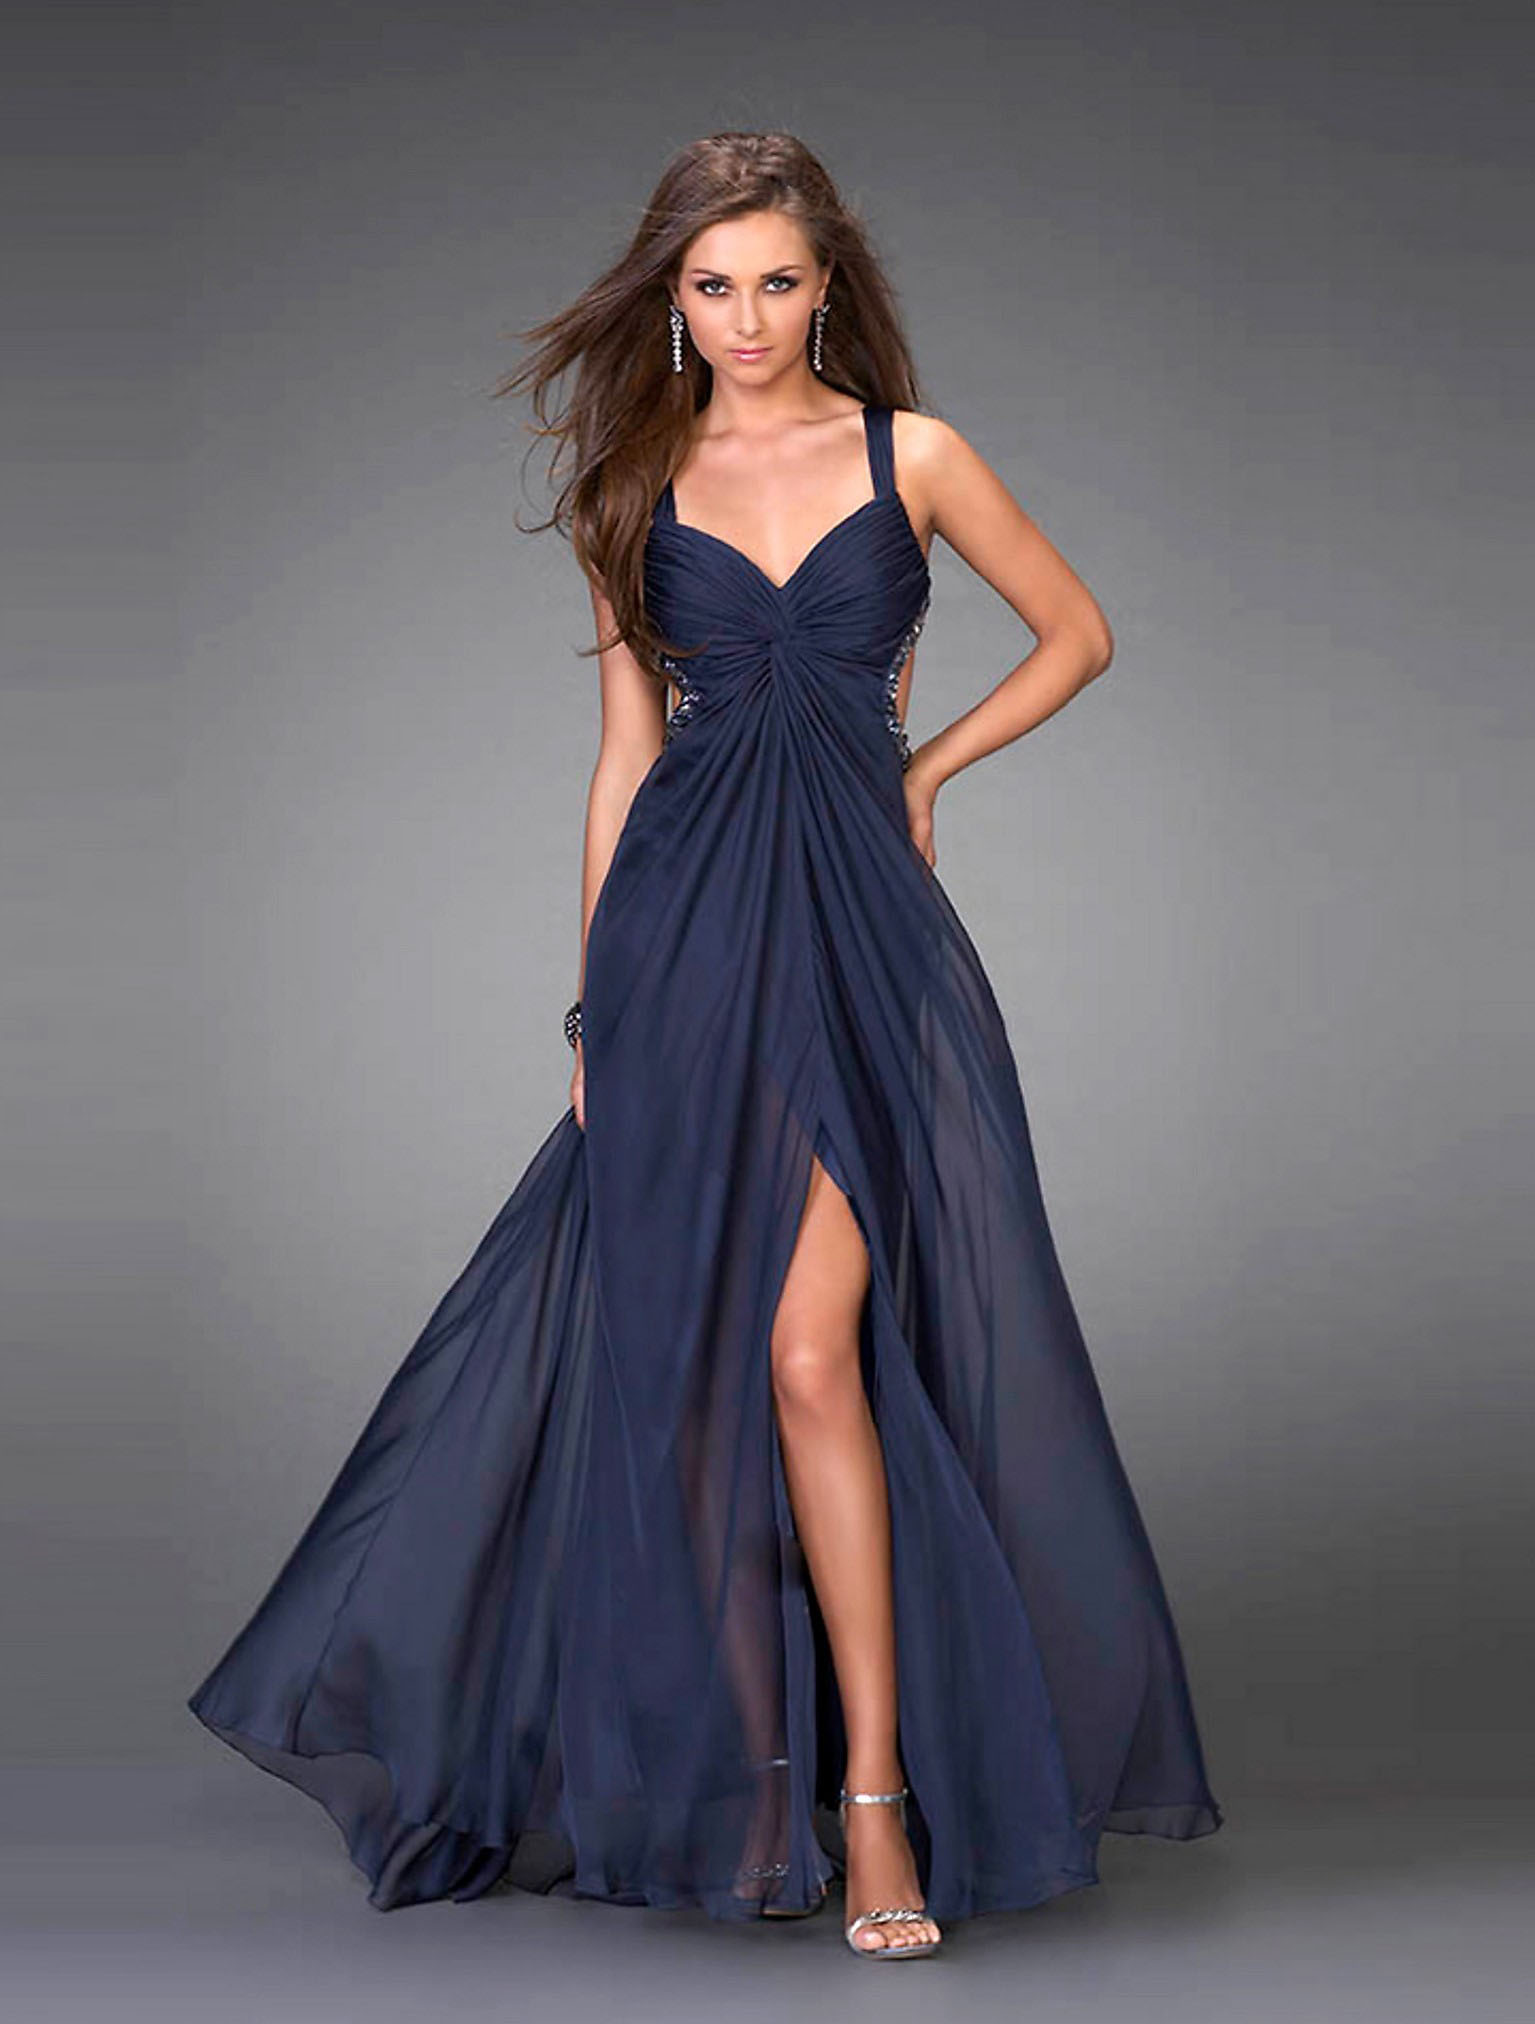 A cobalt blue dress is a total showstopper for so many reasons. It's less-expected than a red or black dress. The cool, vibrant color is strong without being over-the-top.